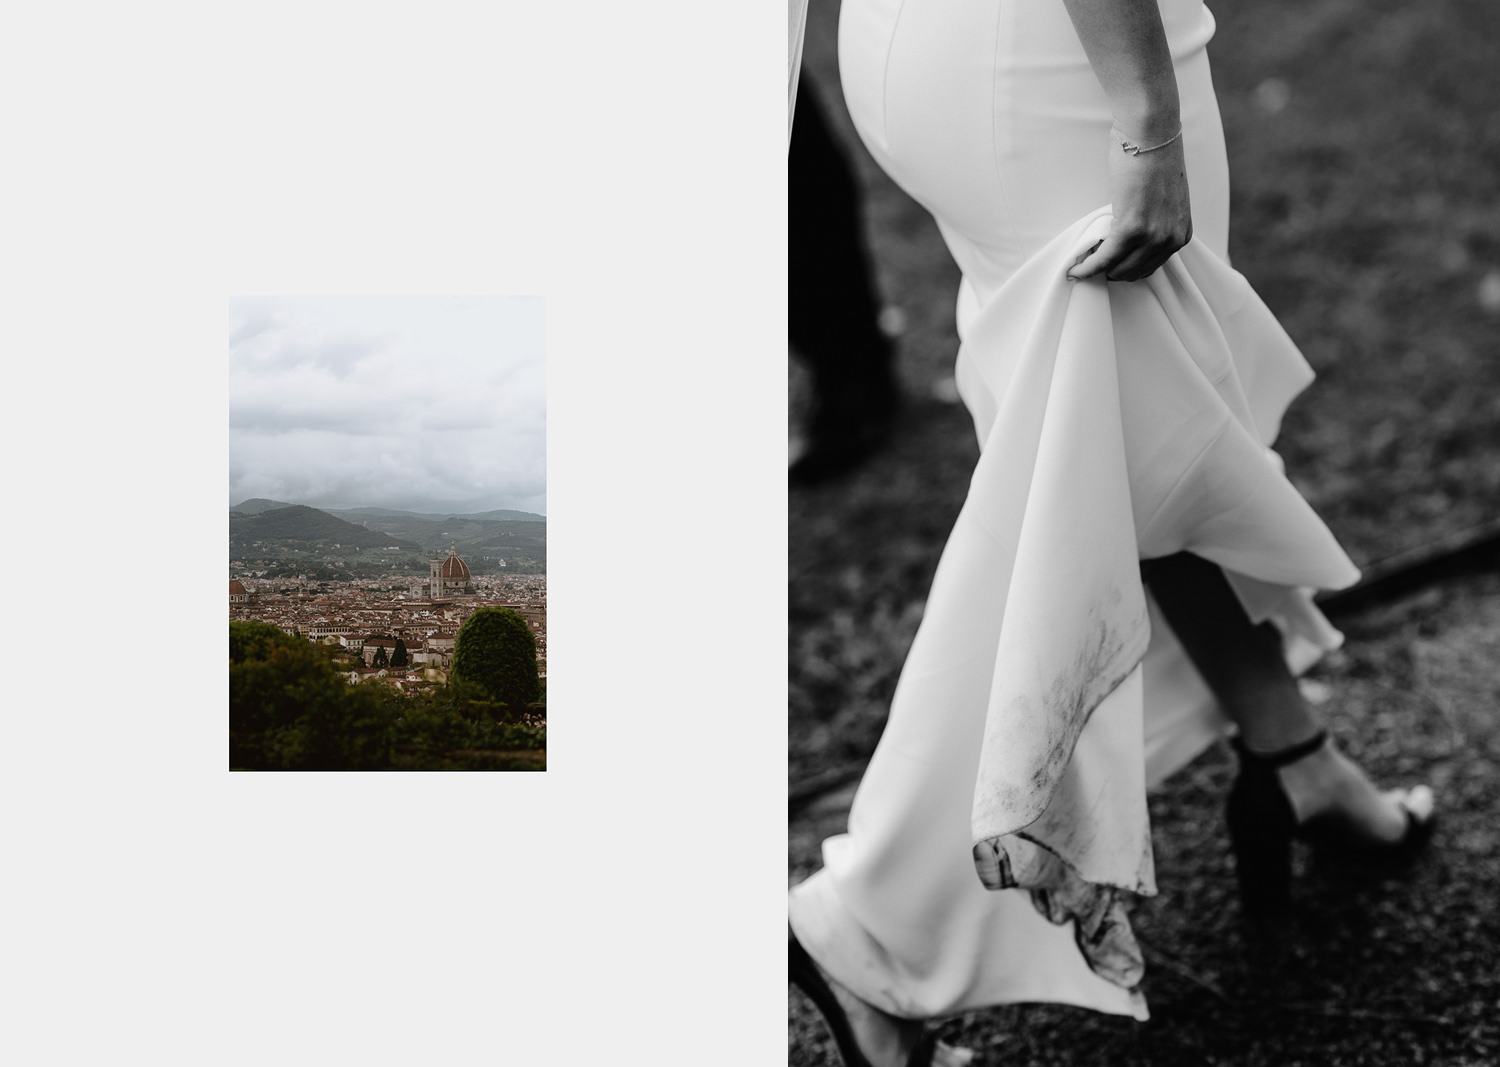 elopement photographer florence torre bellosguardo outdoor cloudy ceremony